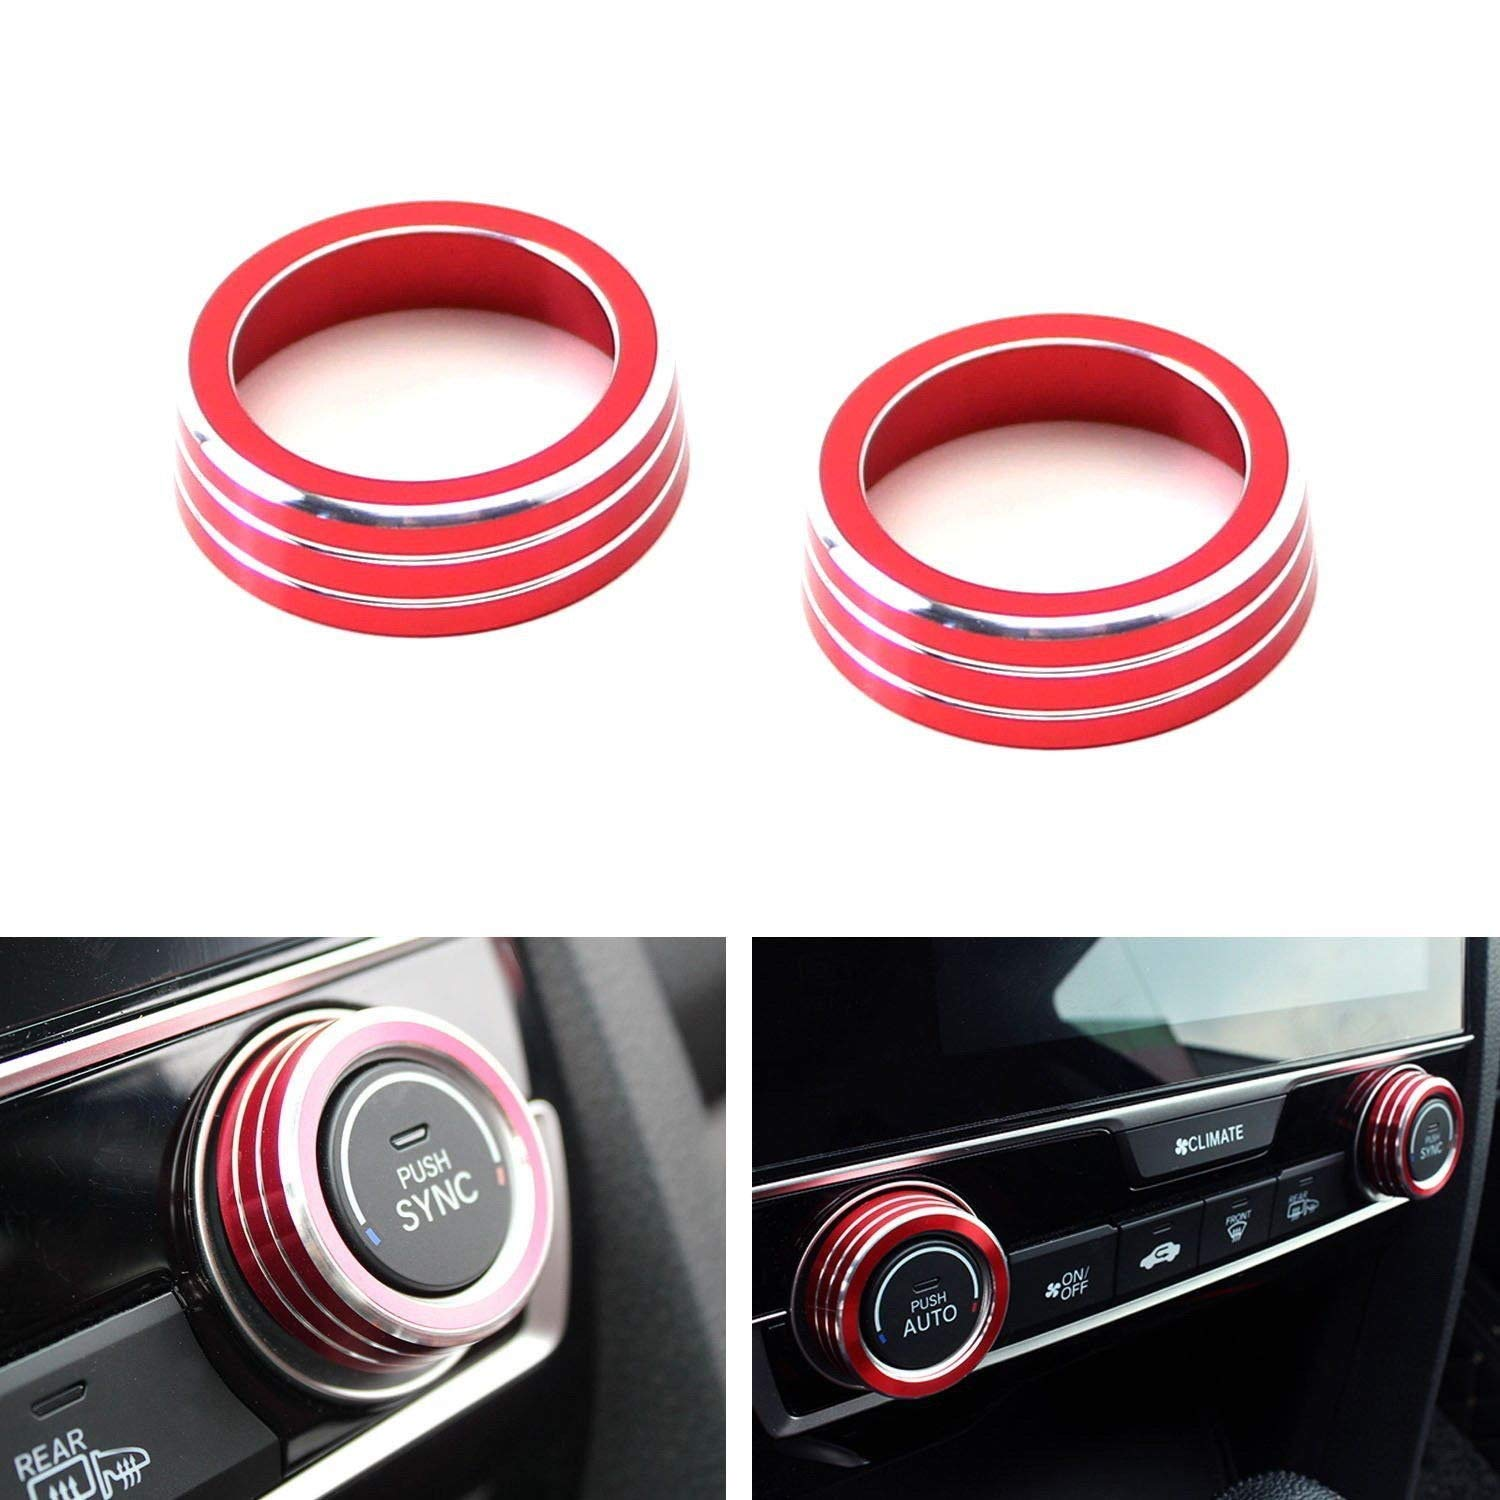 iJDMTOY 2pcs Gold Anodized Aluminum AC Climate Control Ring Knob Covers for 2016-up 10th Gen Honda Civic iJDMTOY Auto Accessories Decorative Button/Knob Controller Rings